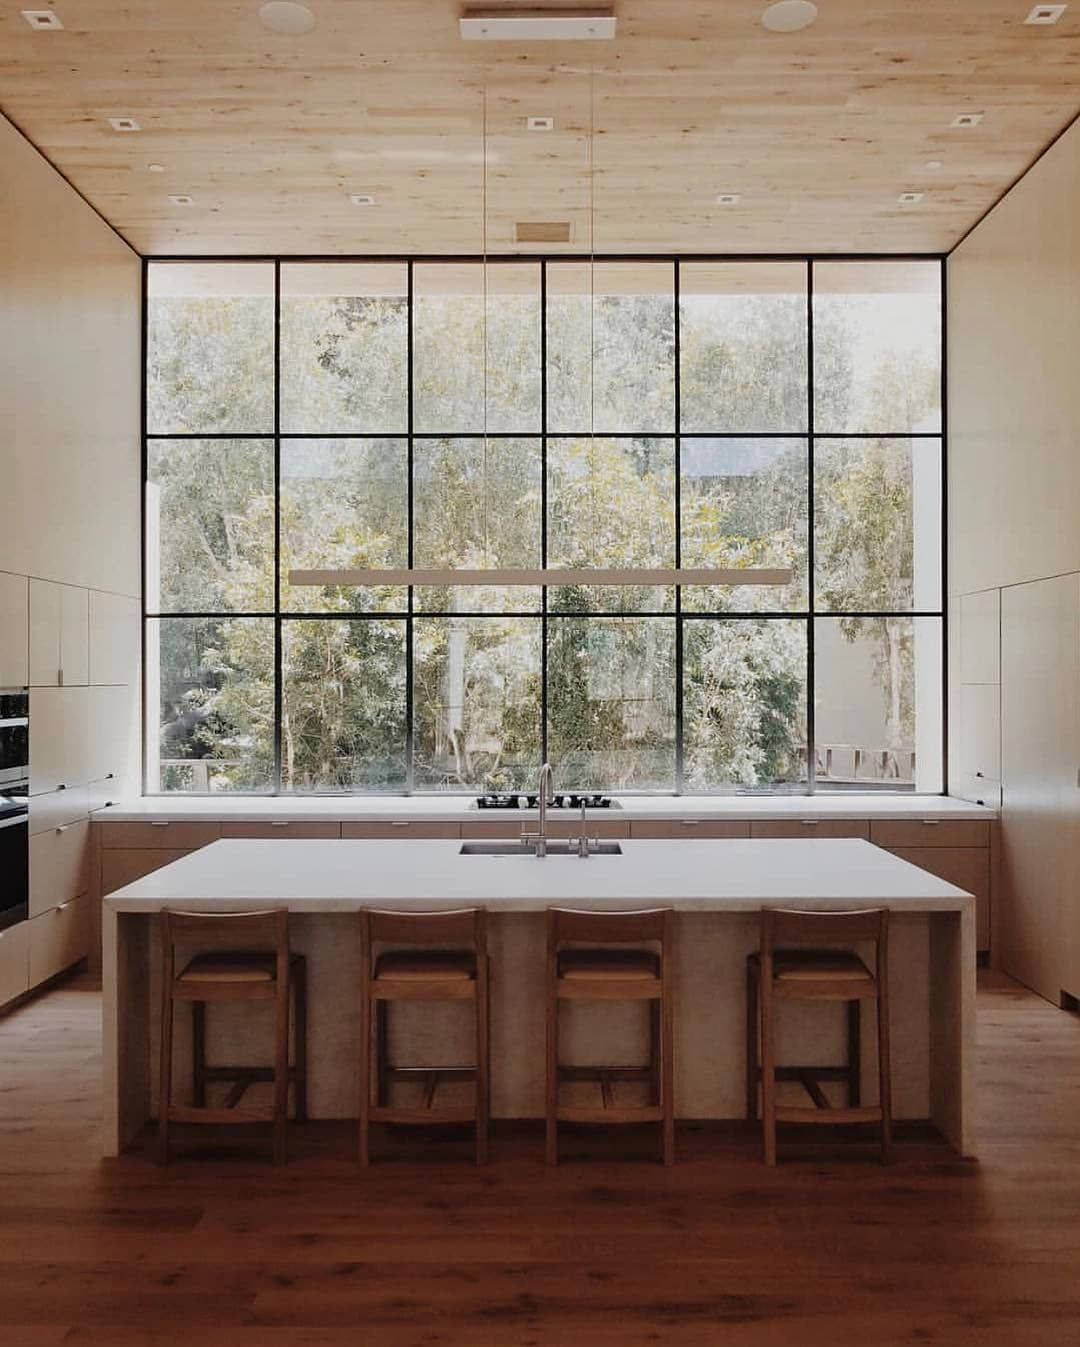 Est living on instagram  ckitchen forget breakfast the run we   happily start our wednesday soaking up morning sun inside this cathedral like also best luxury interior design group images in room rh pinterest